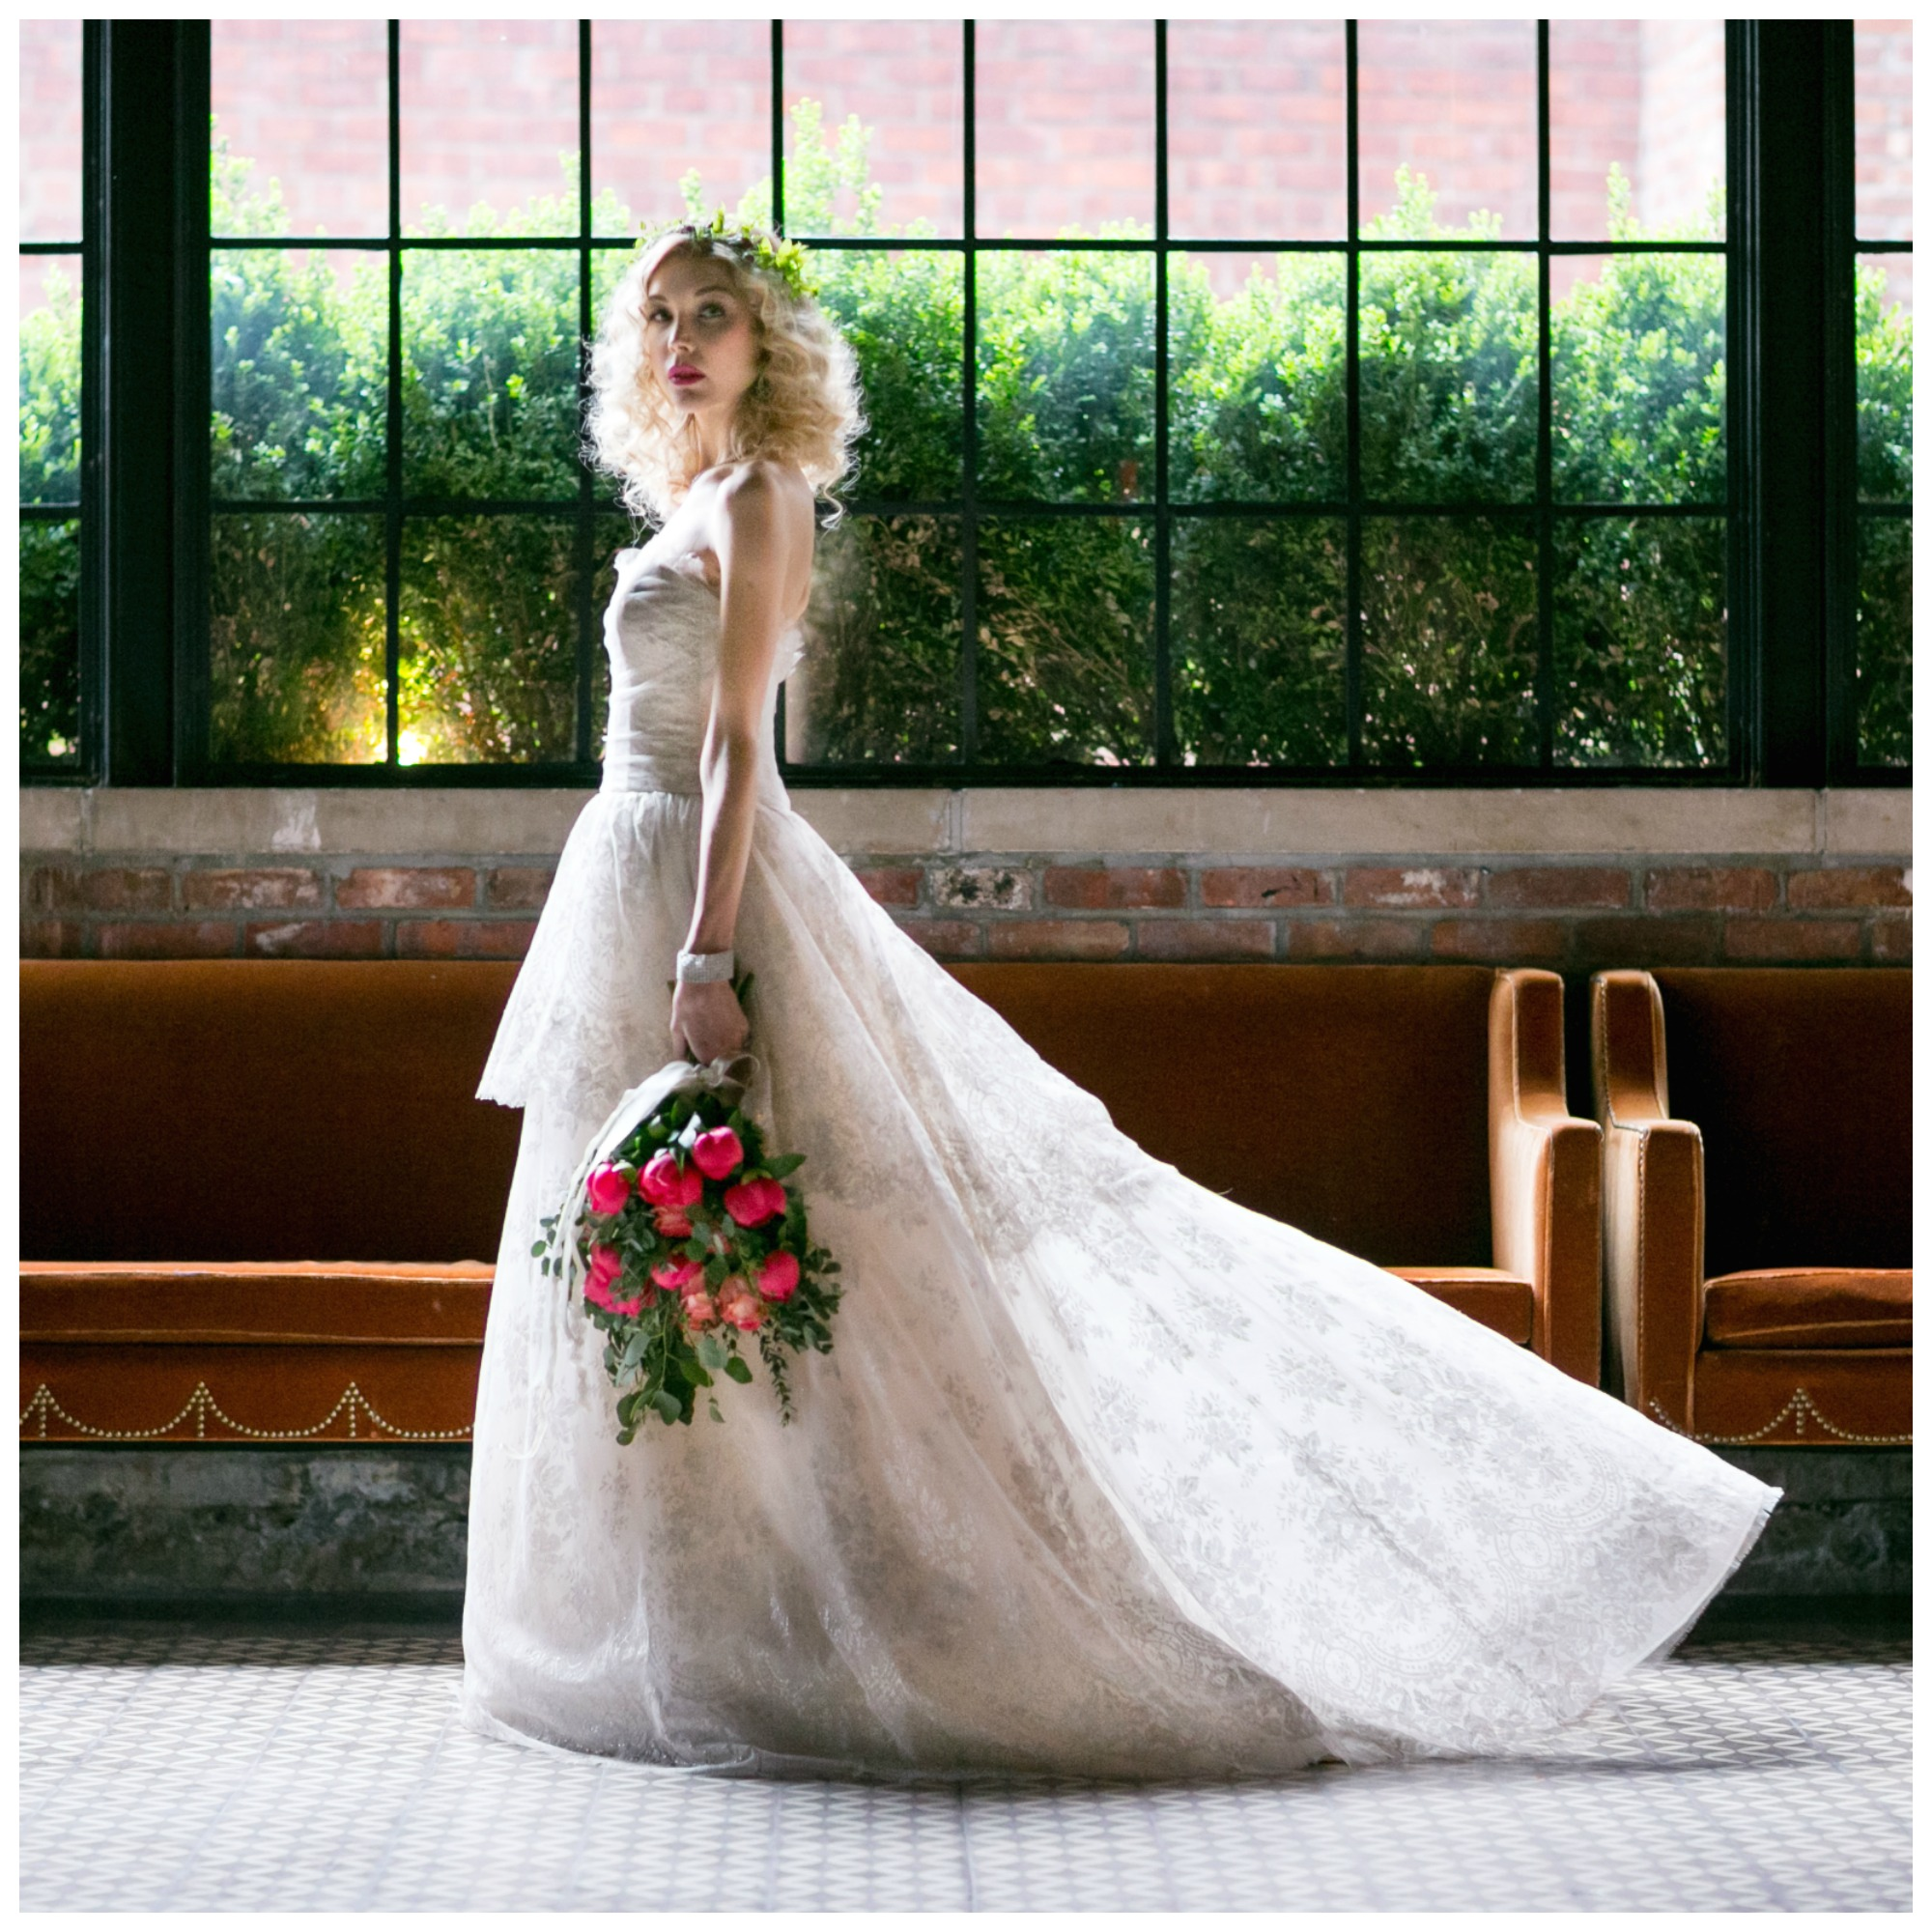 Bride with blonde curly hair and bright pink lip poses in the Bowery Hotel, New York City